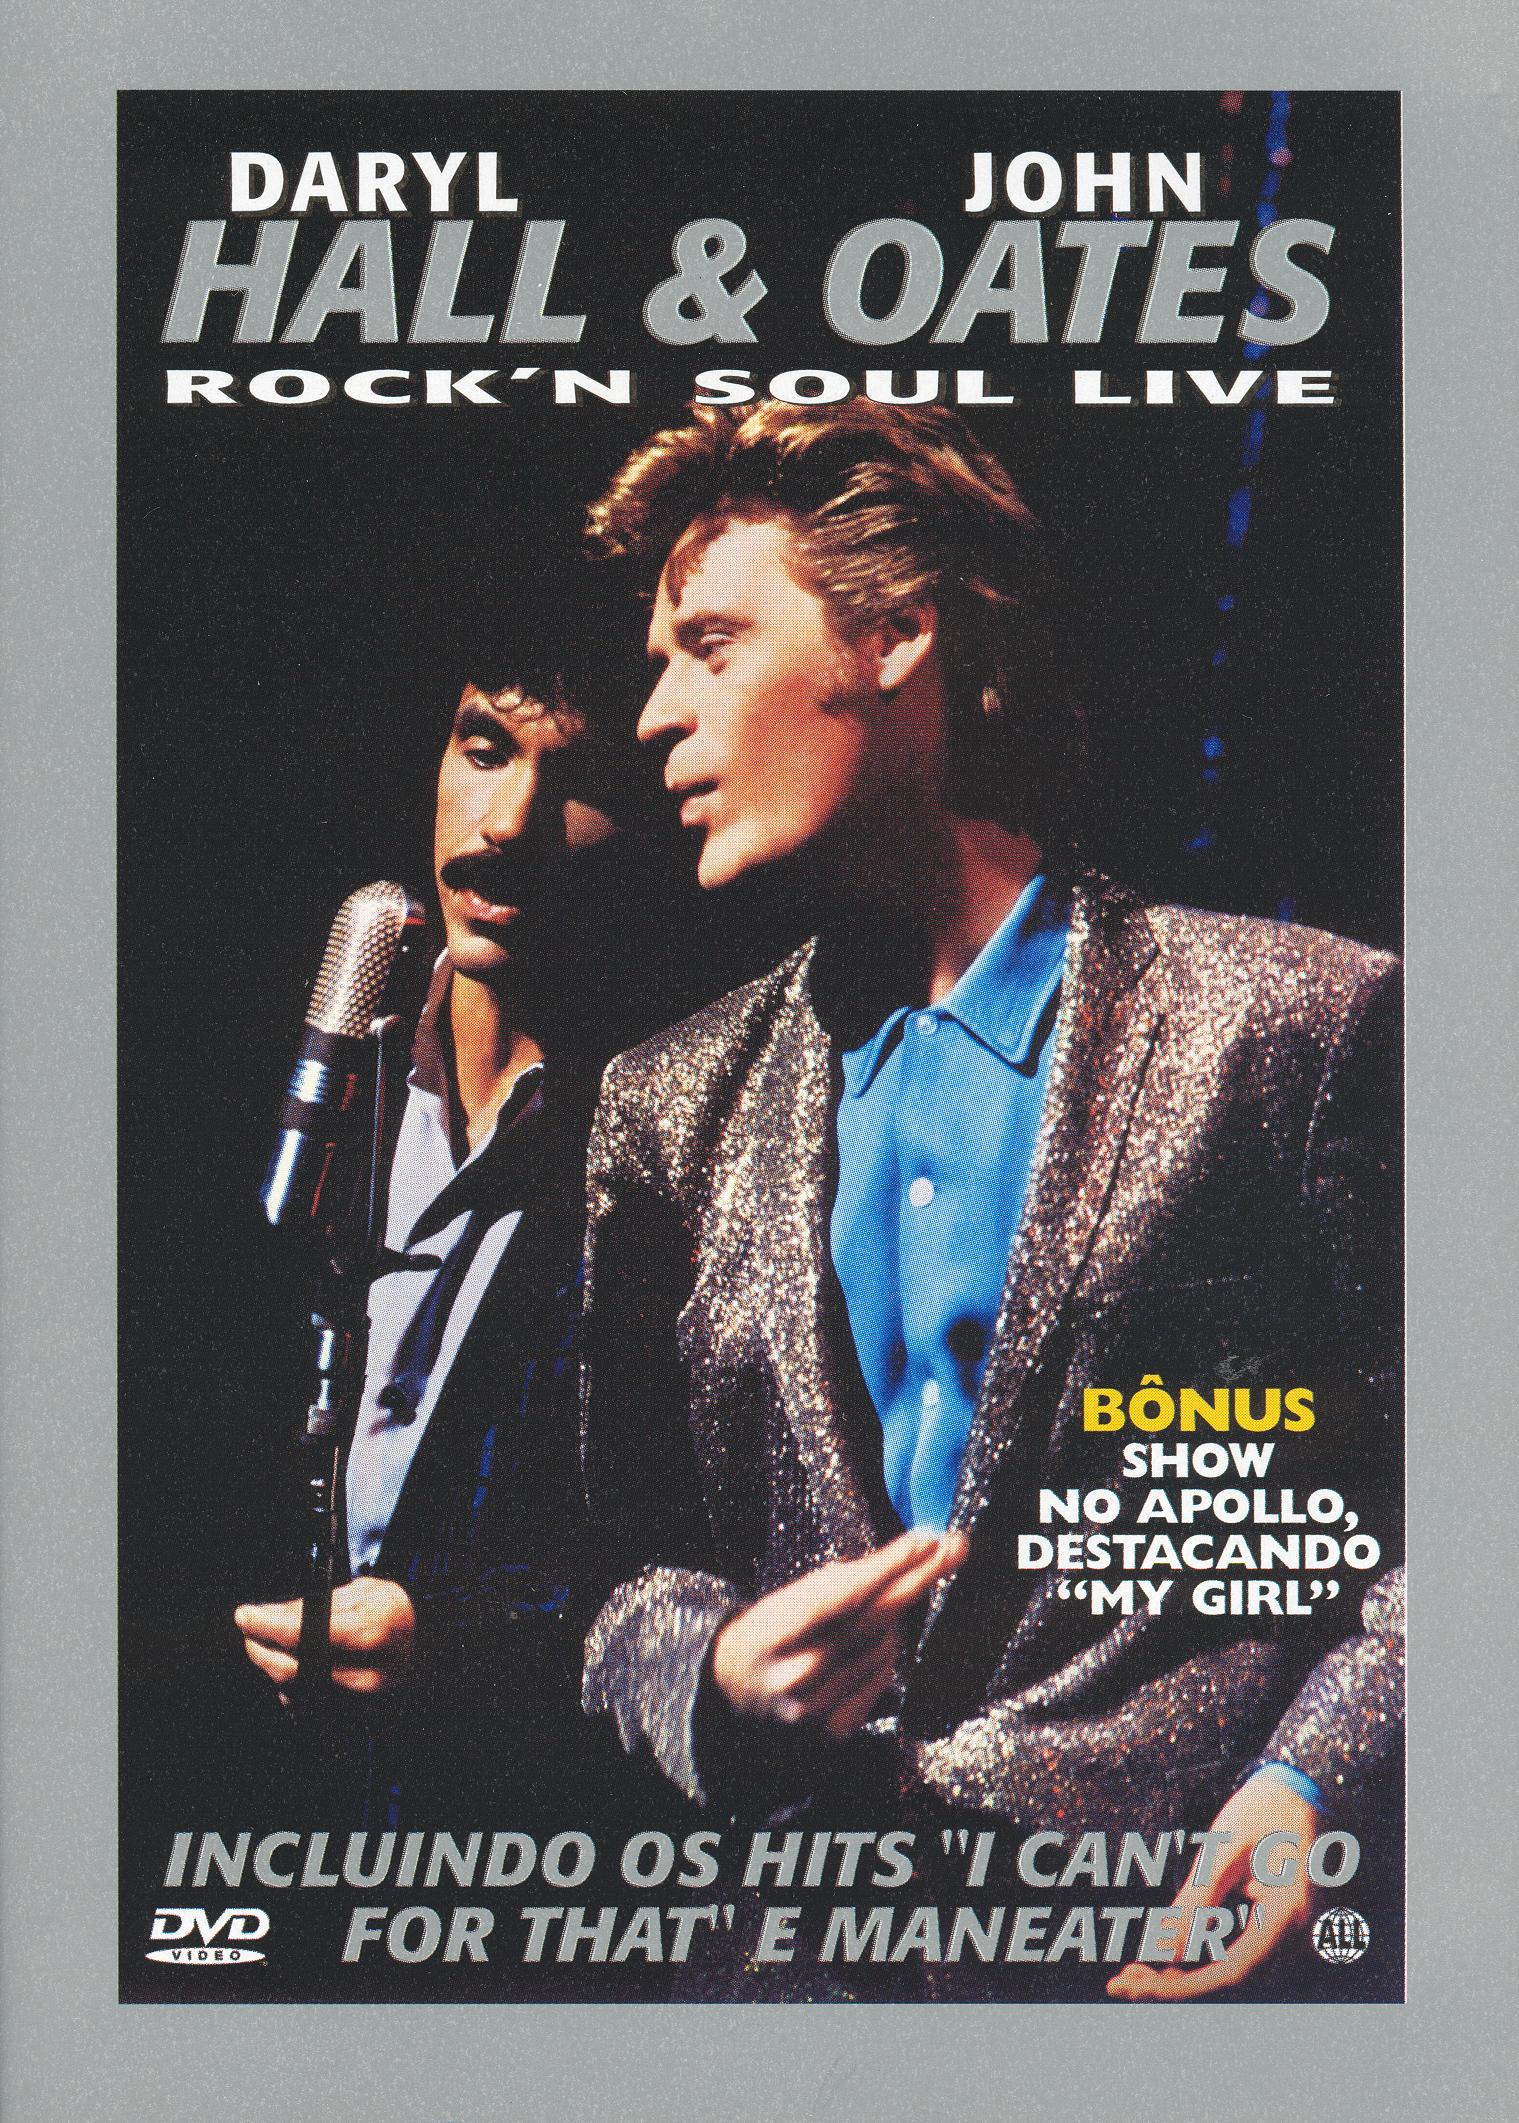 Daryl Hall and John Oates: Rock 'n Soul Live